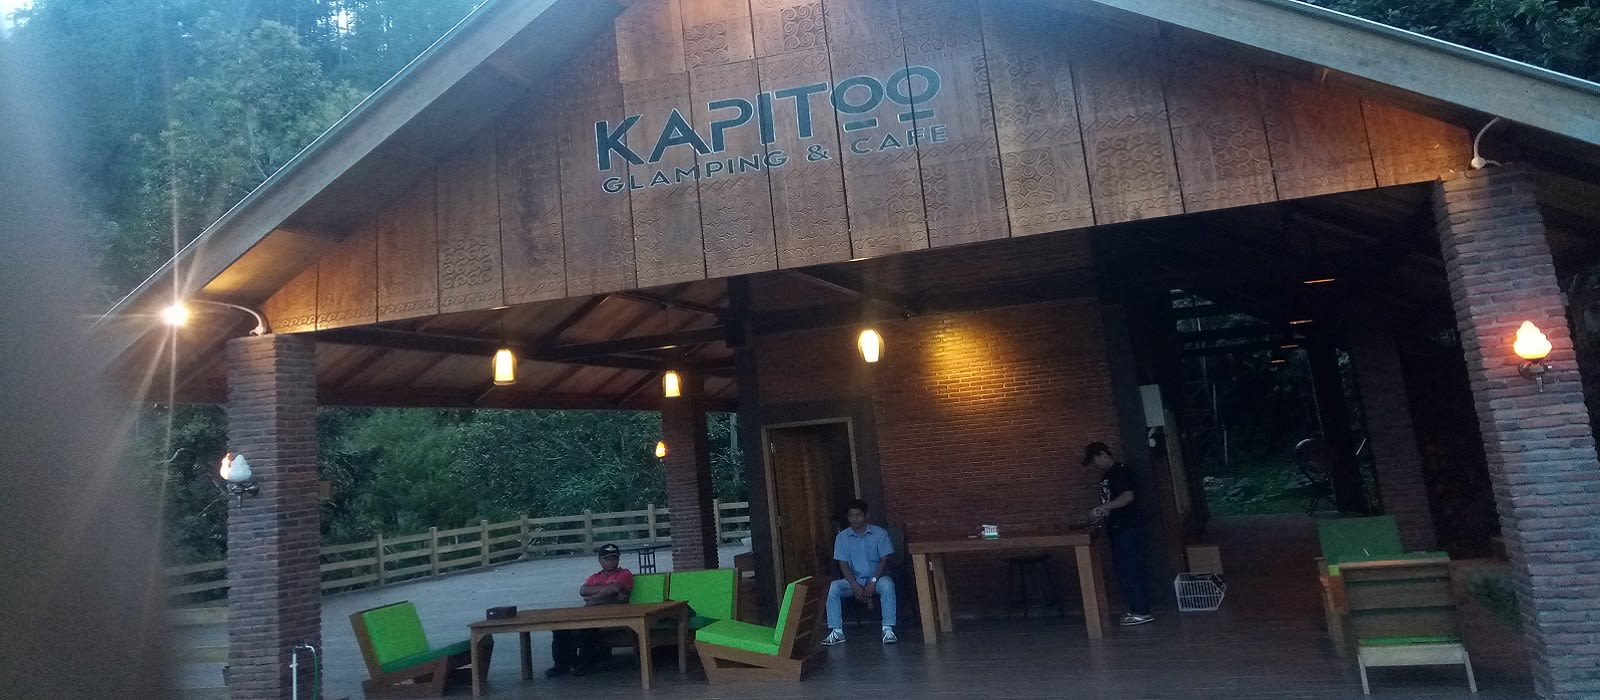 Hotel Glamping Kapitoo and Cafe Indonesia